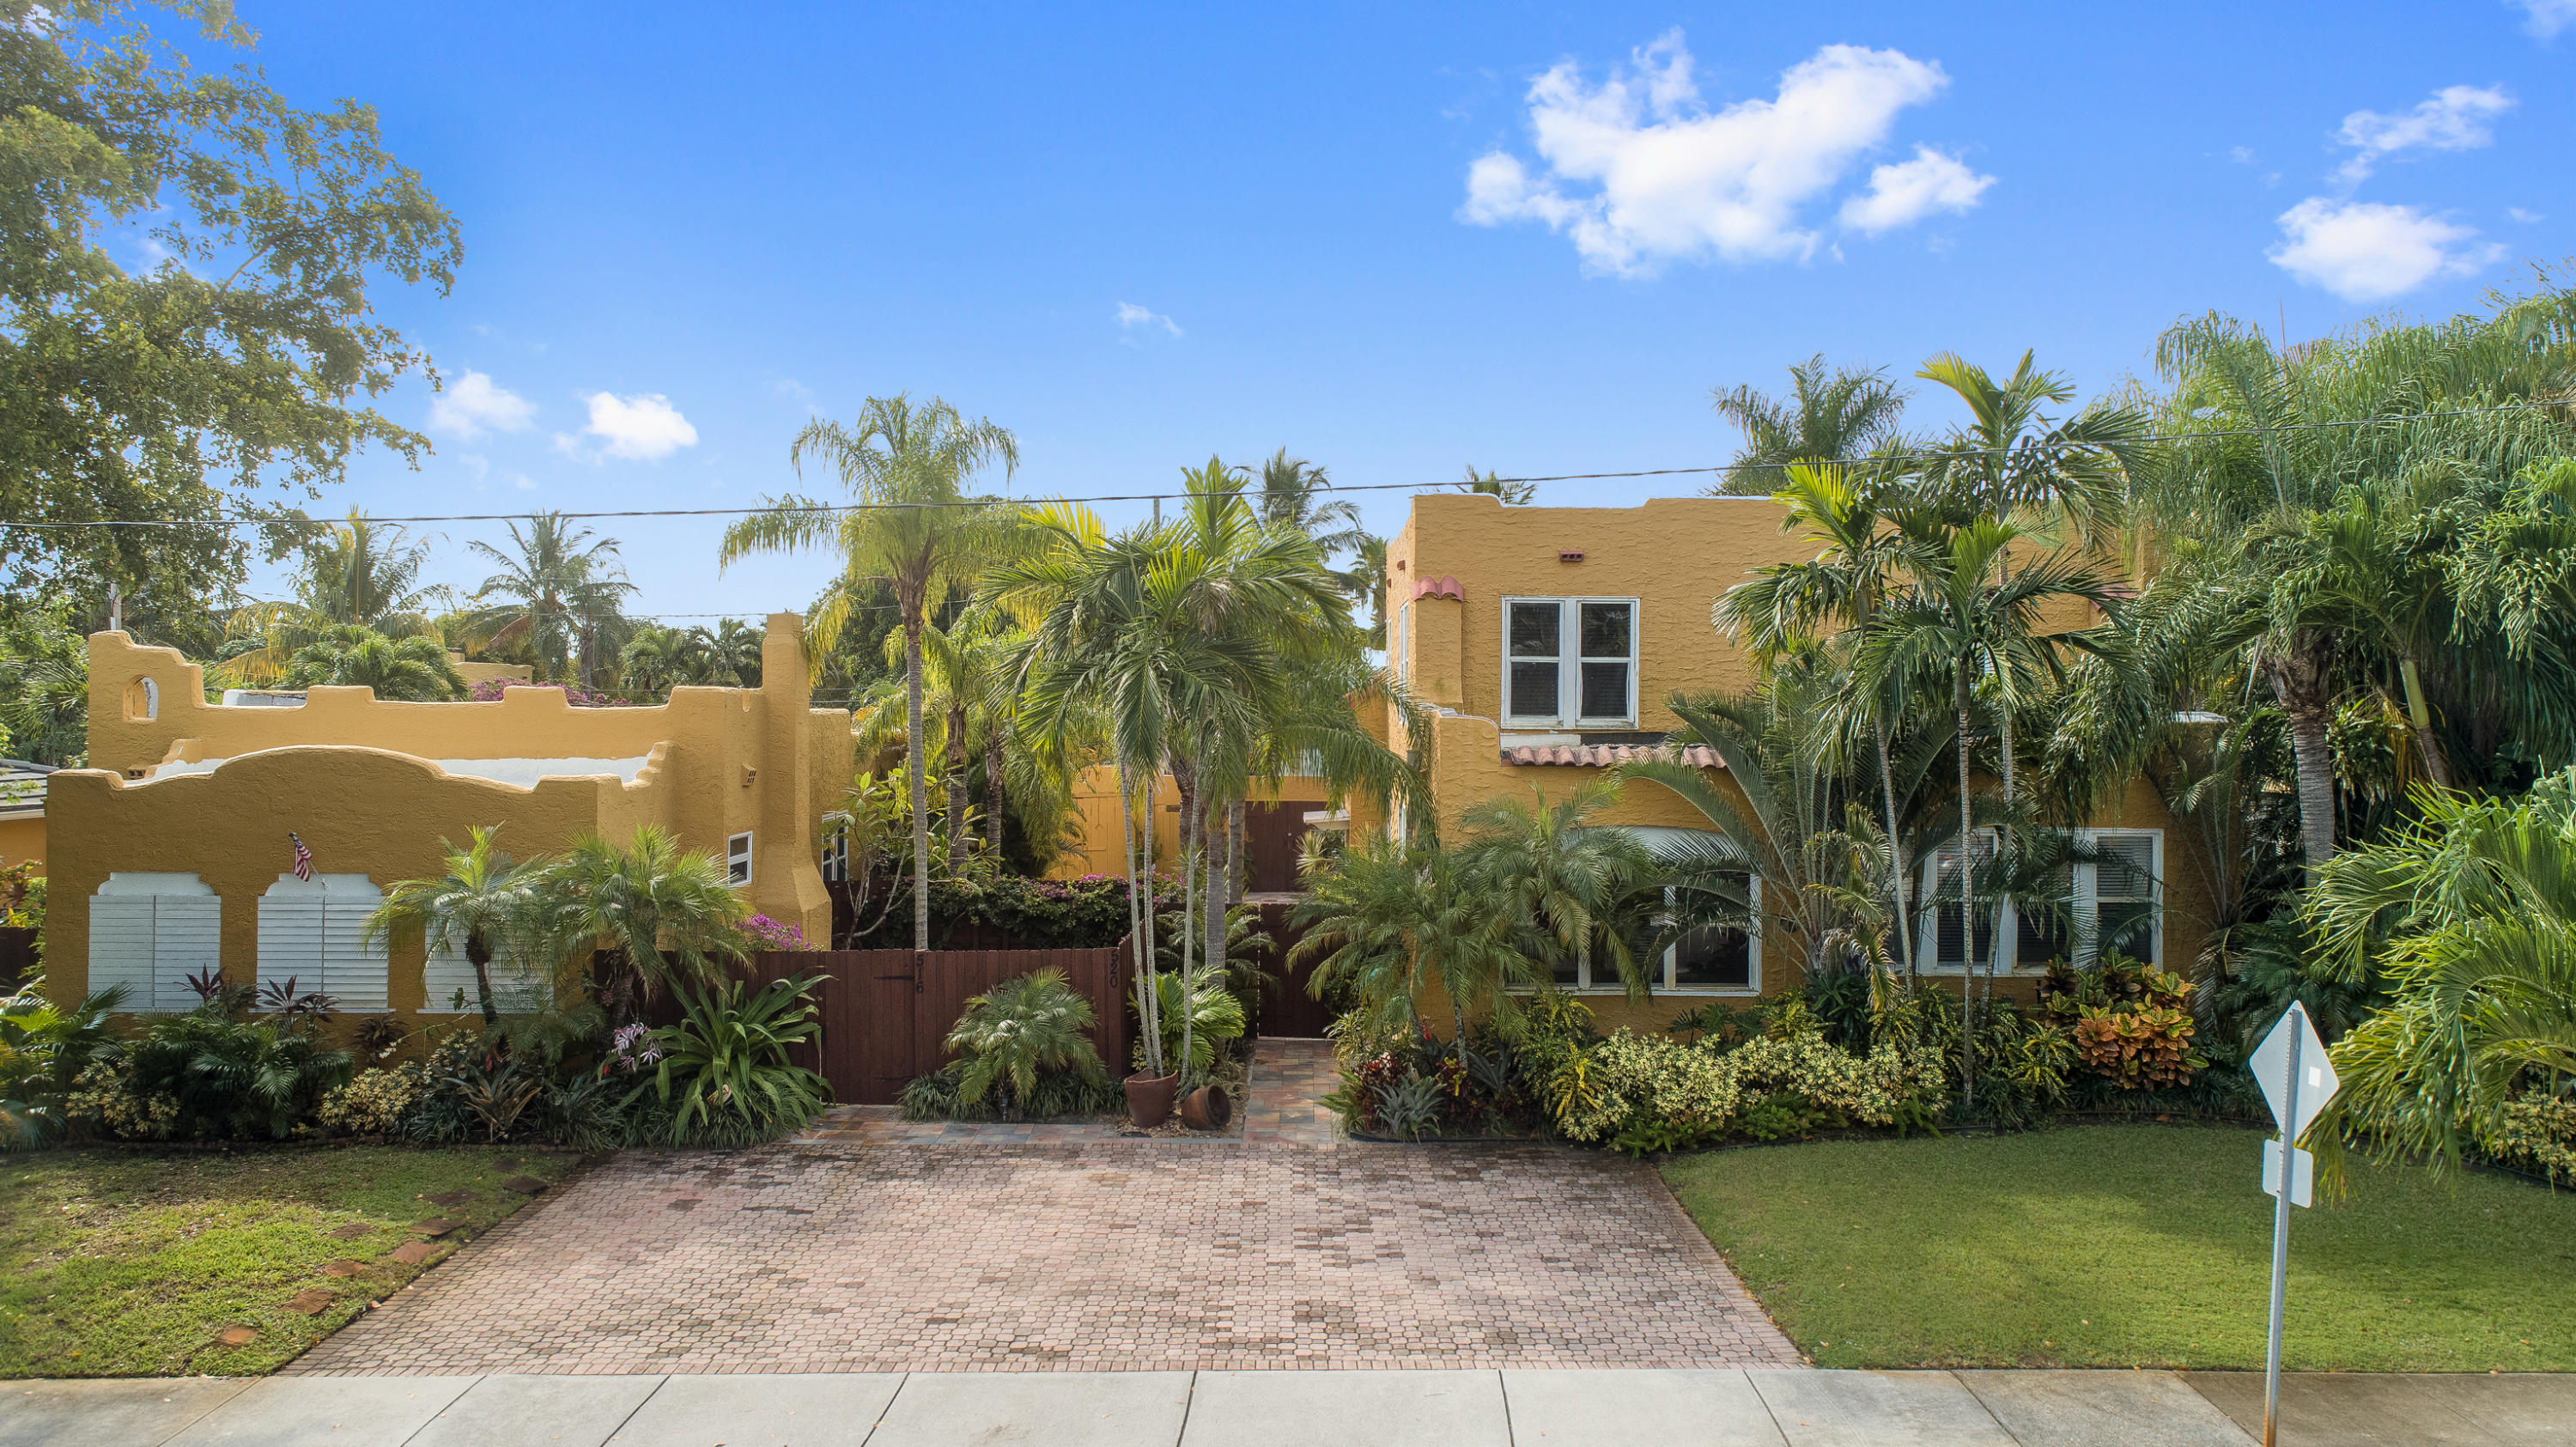 516-5 34th Street West Palm Beach, FL 33407